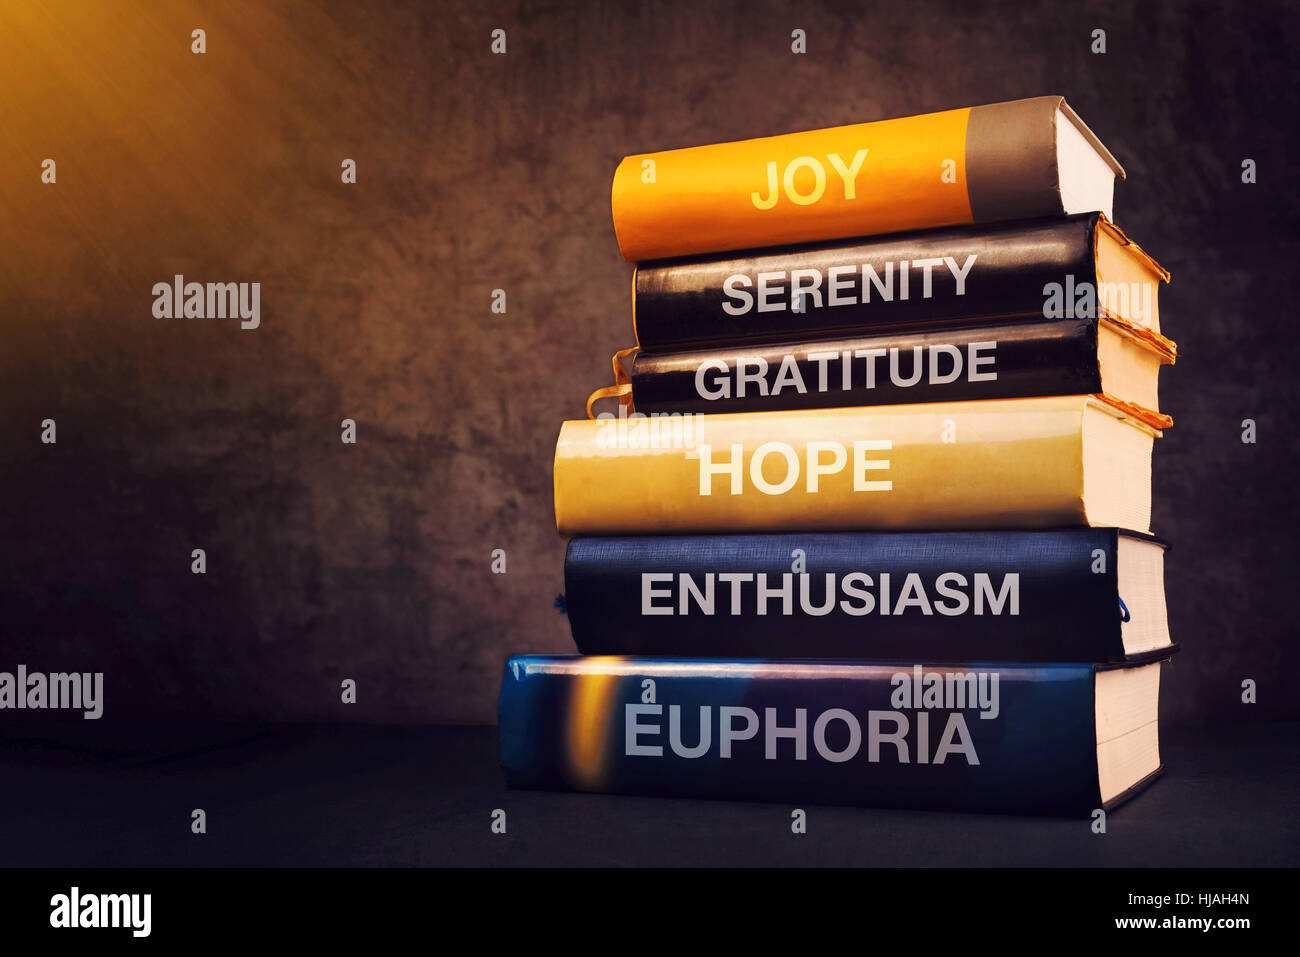 Positive emotions and feelings concept with book titles on library shelf - joy, serenity, gratitude, hope, enthusiasm - Stock Image